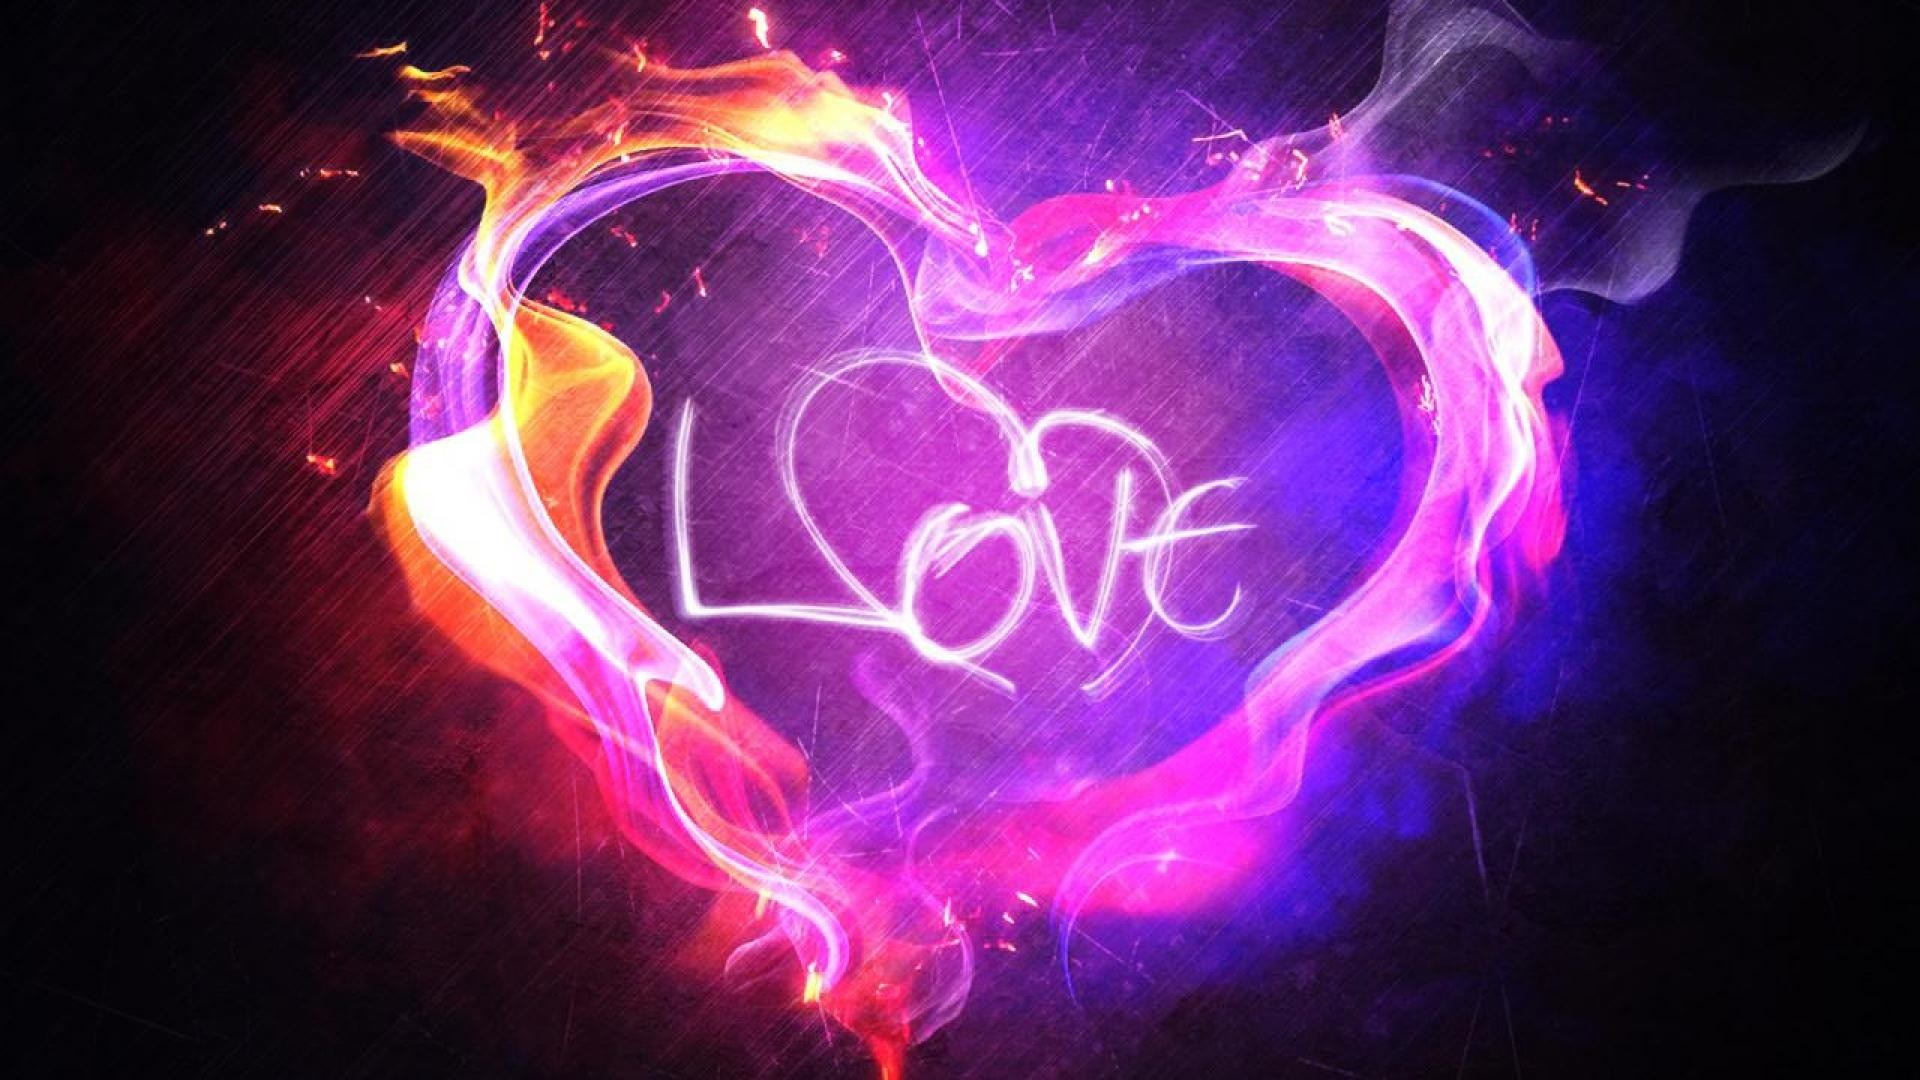 Cool heart wallpapers wallpapertag - Cool love images ...